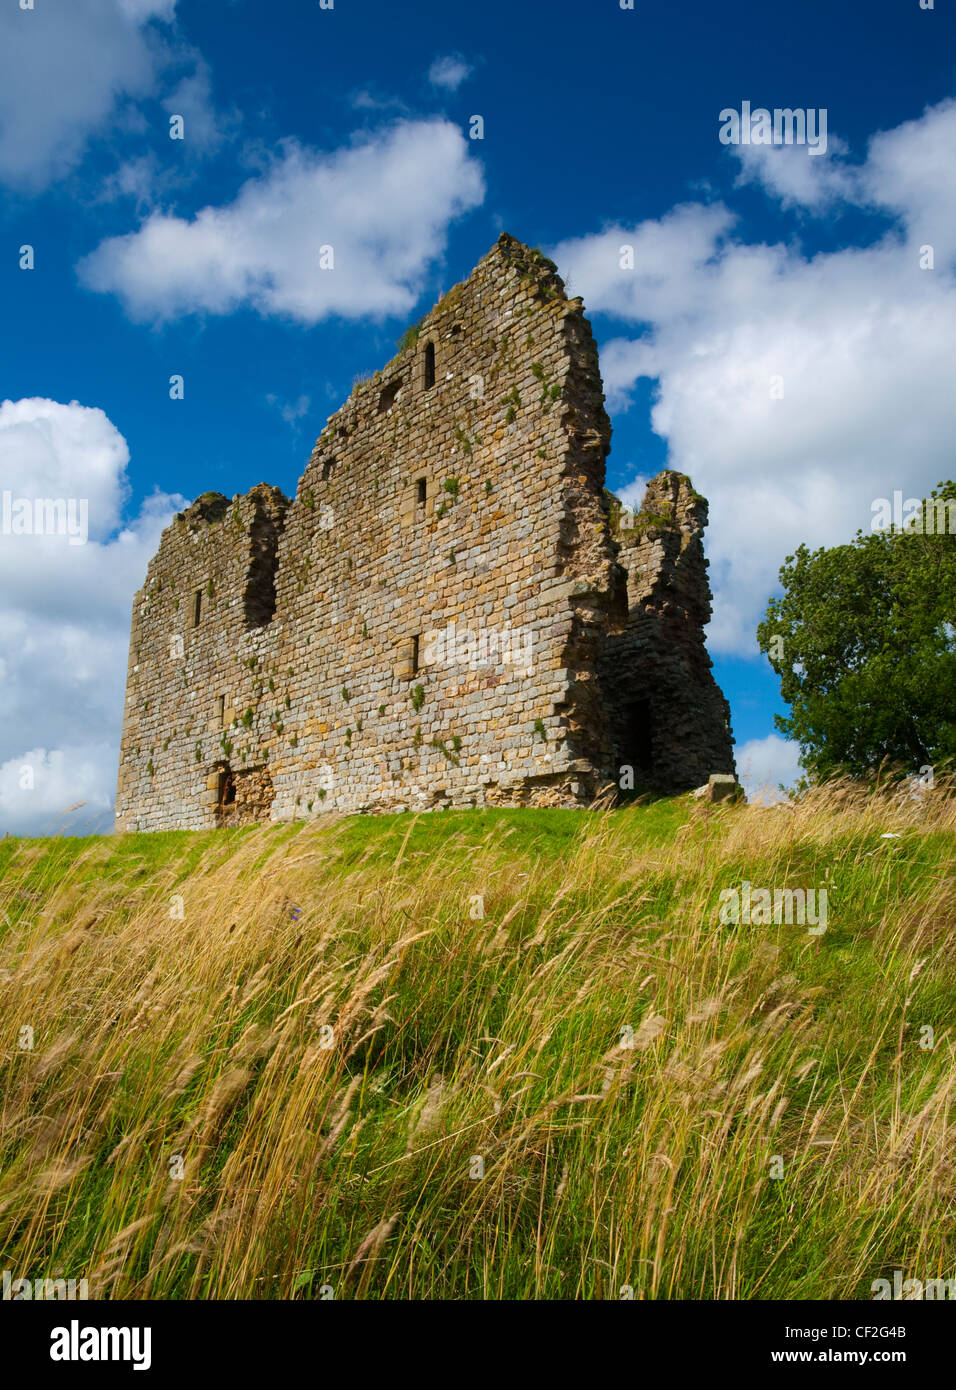 Thirlwall Castle, near Greenhead, part of the Northumberland National Park. - Stock Image